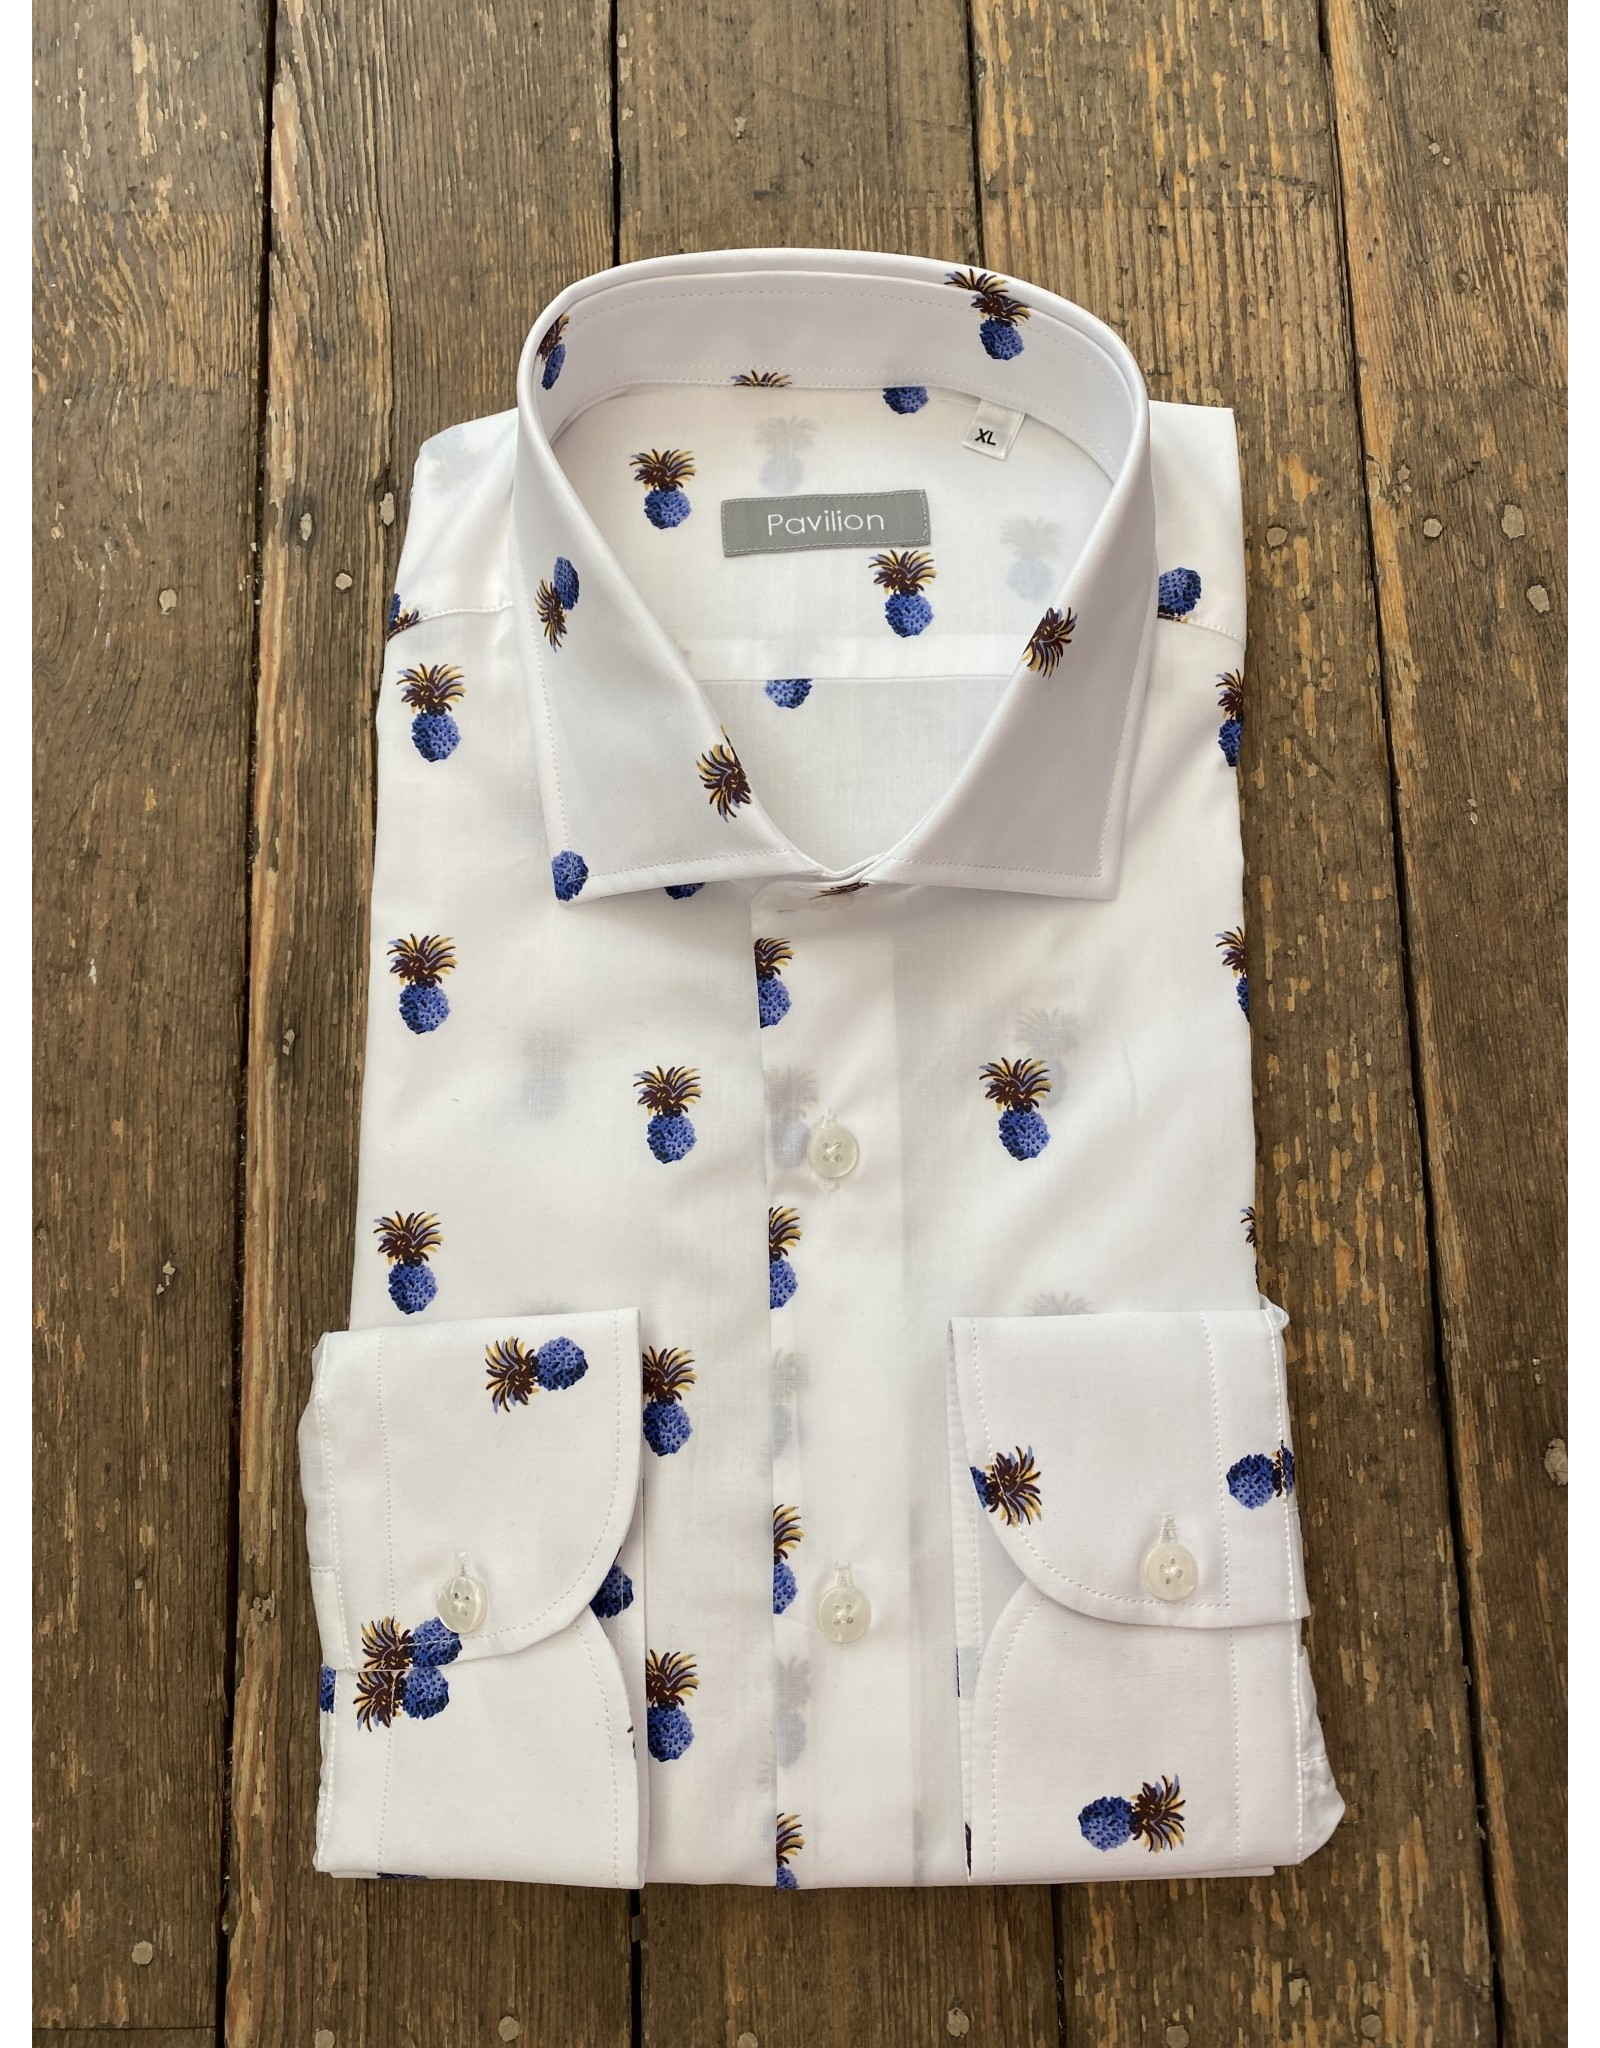 Pavilion Mens Cotton Pineapple Shirt